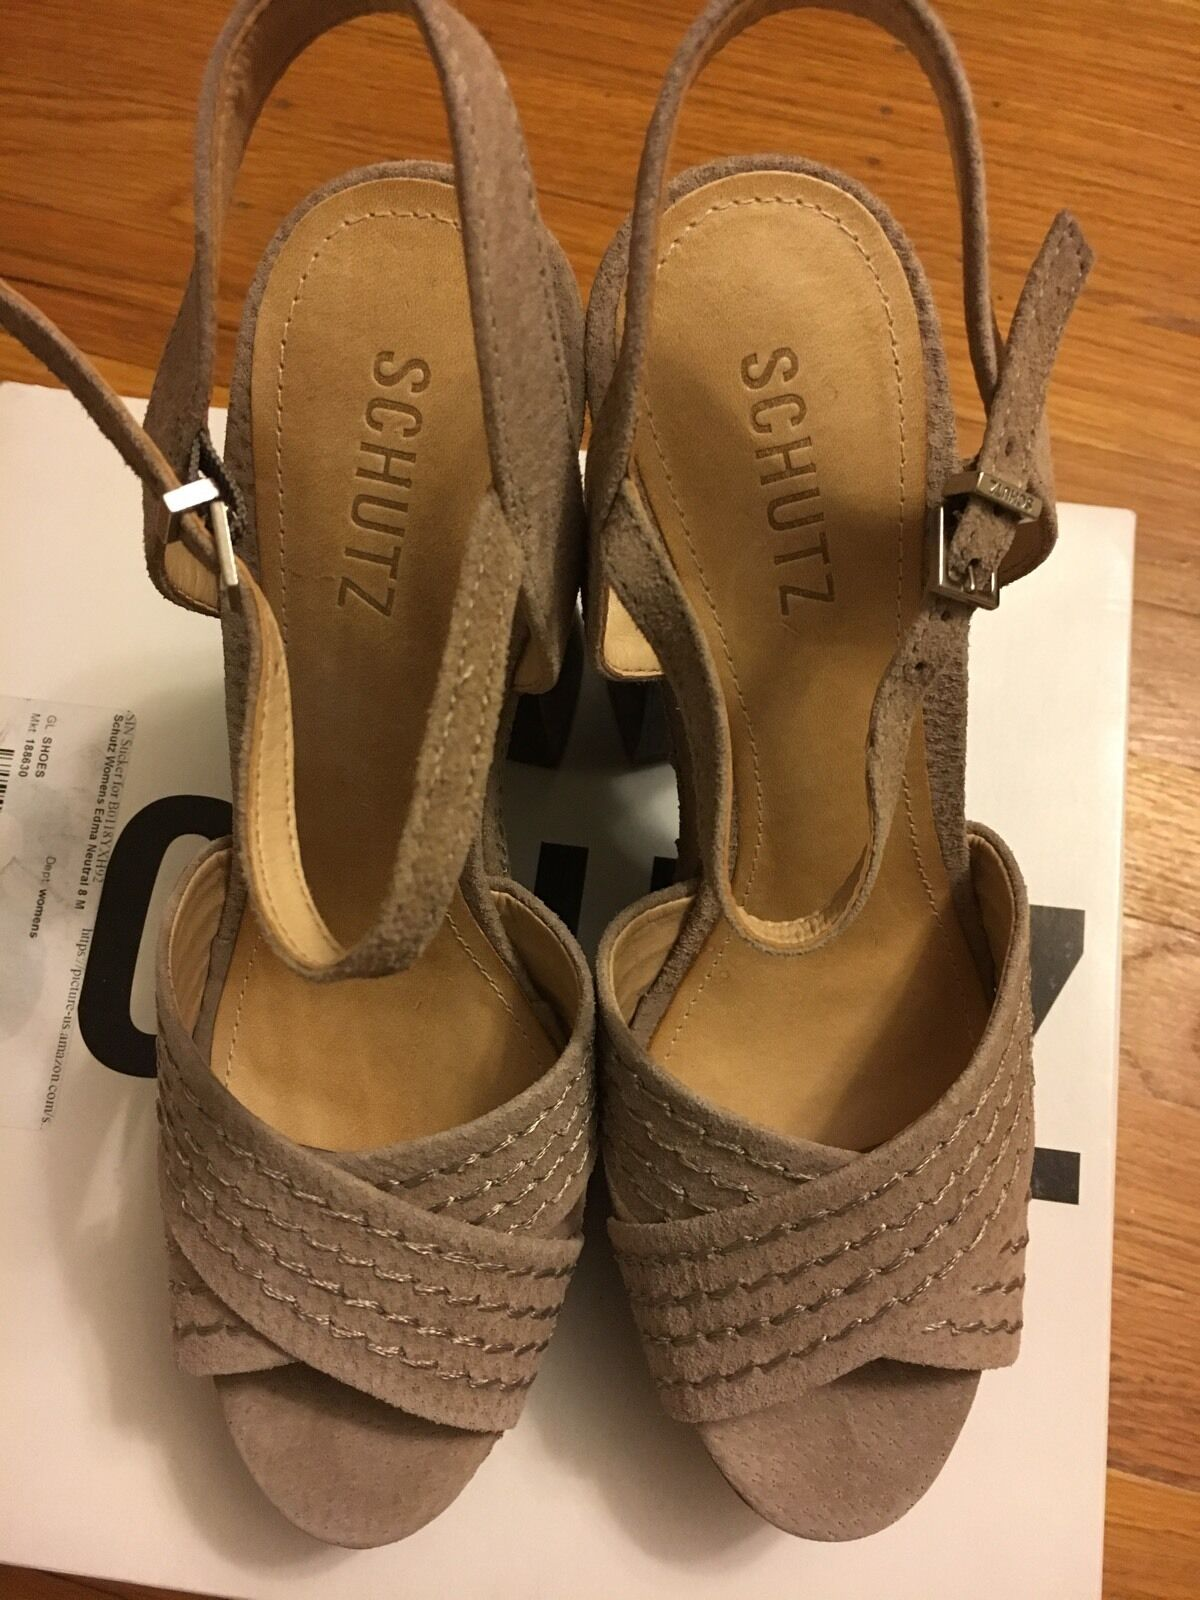 NIB SCHUTZ EDMA NEUTRAL Farbe Farbe Farbe LEATHER Platform Sandals Sz 8M 98f968